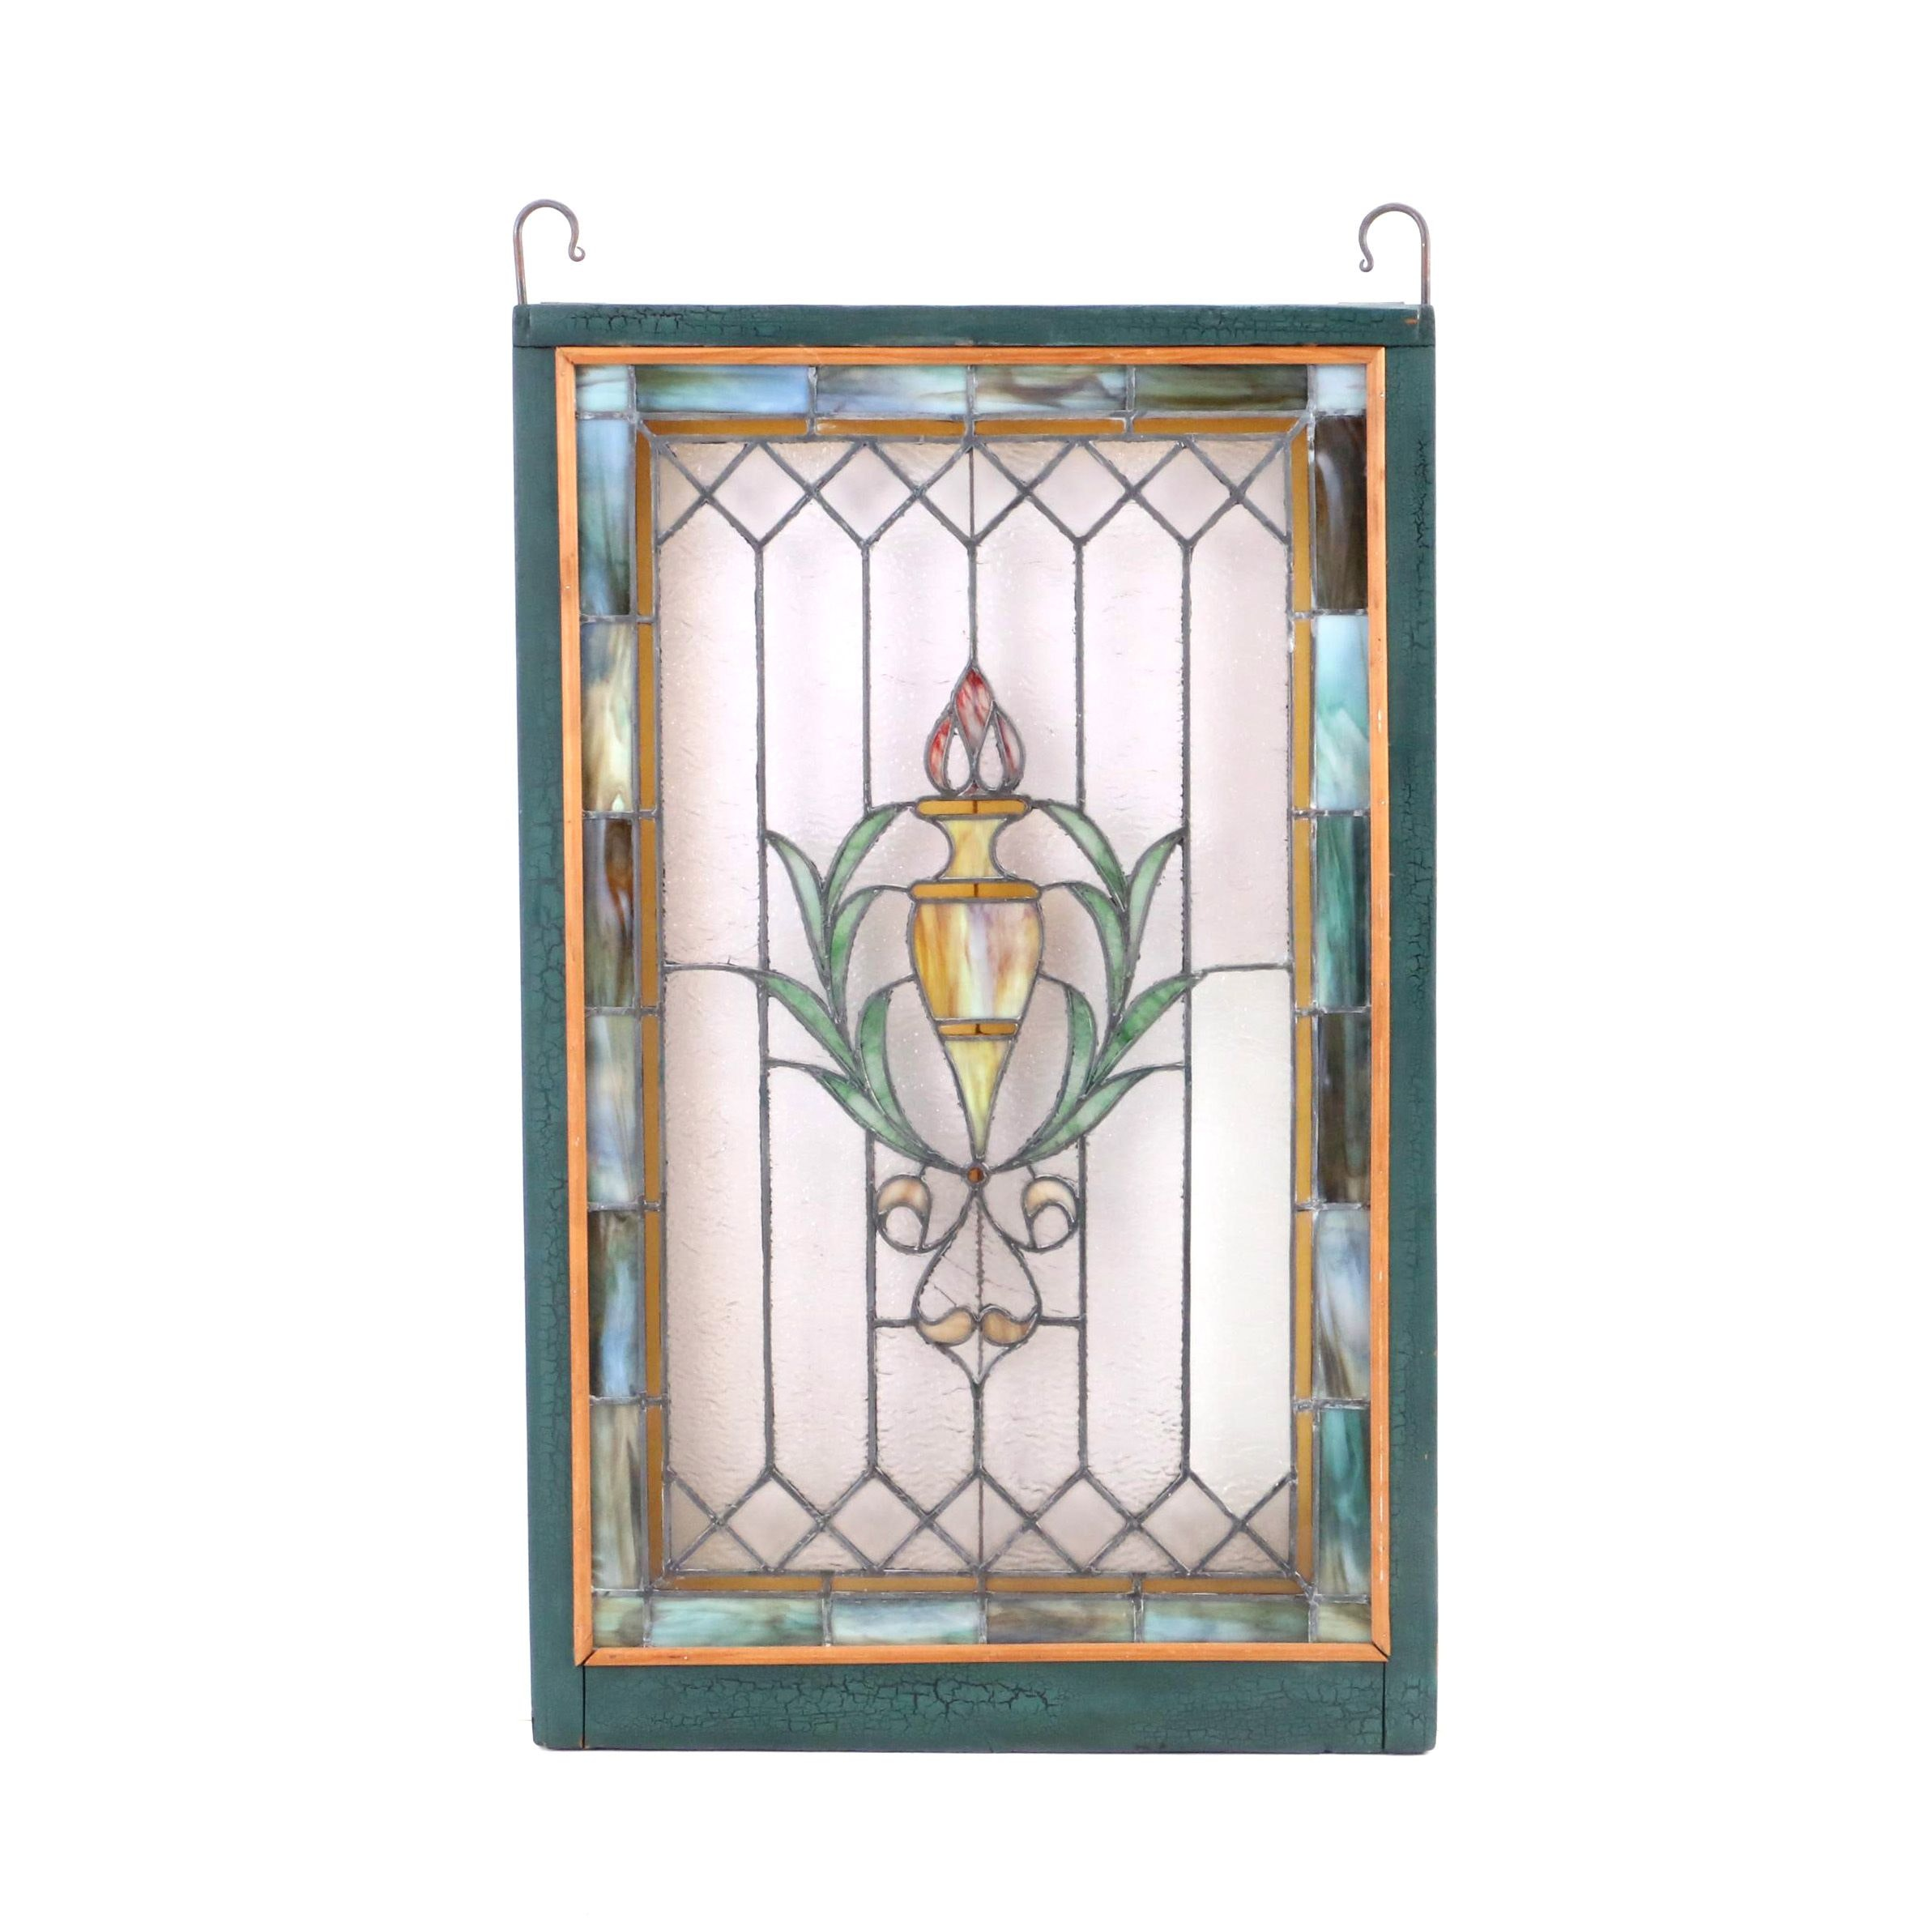 Illuminated Stained and Slag Glass Panel